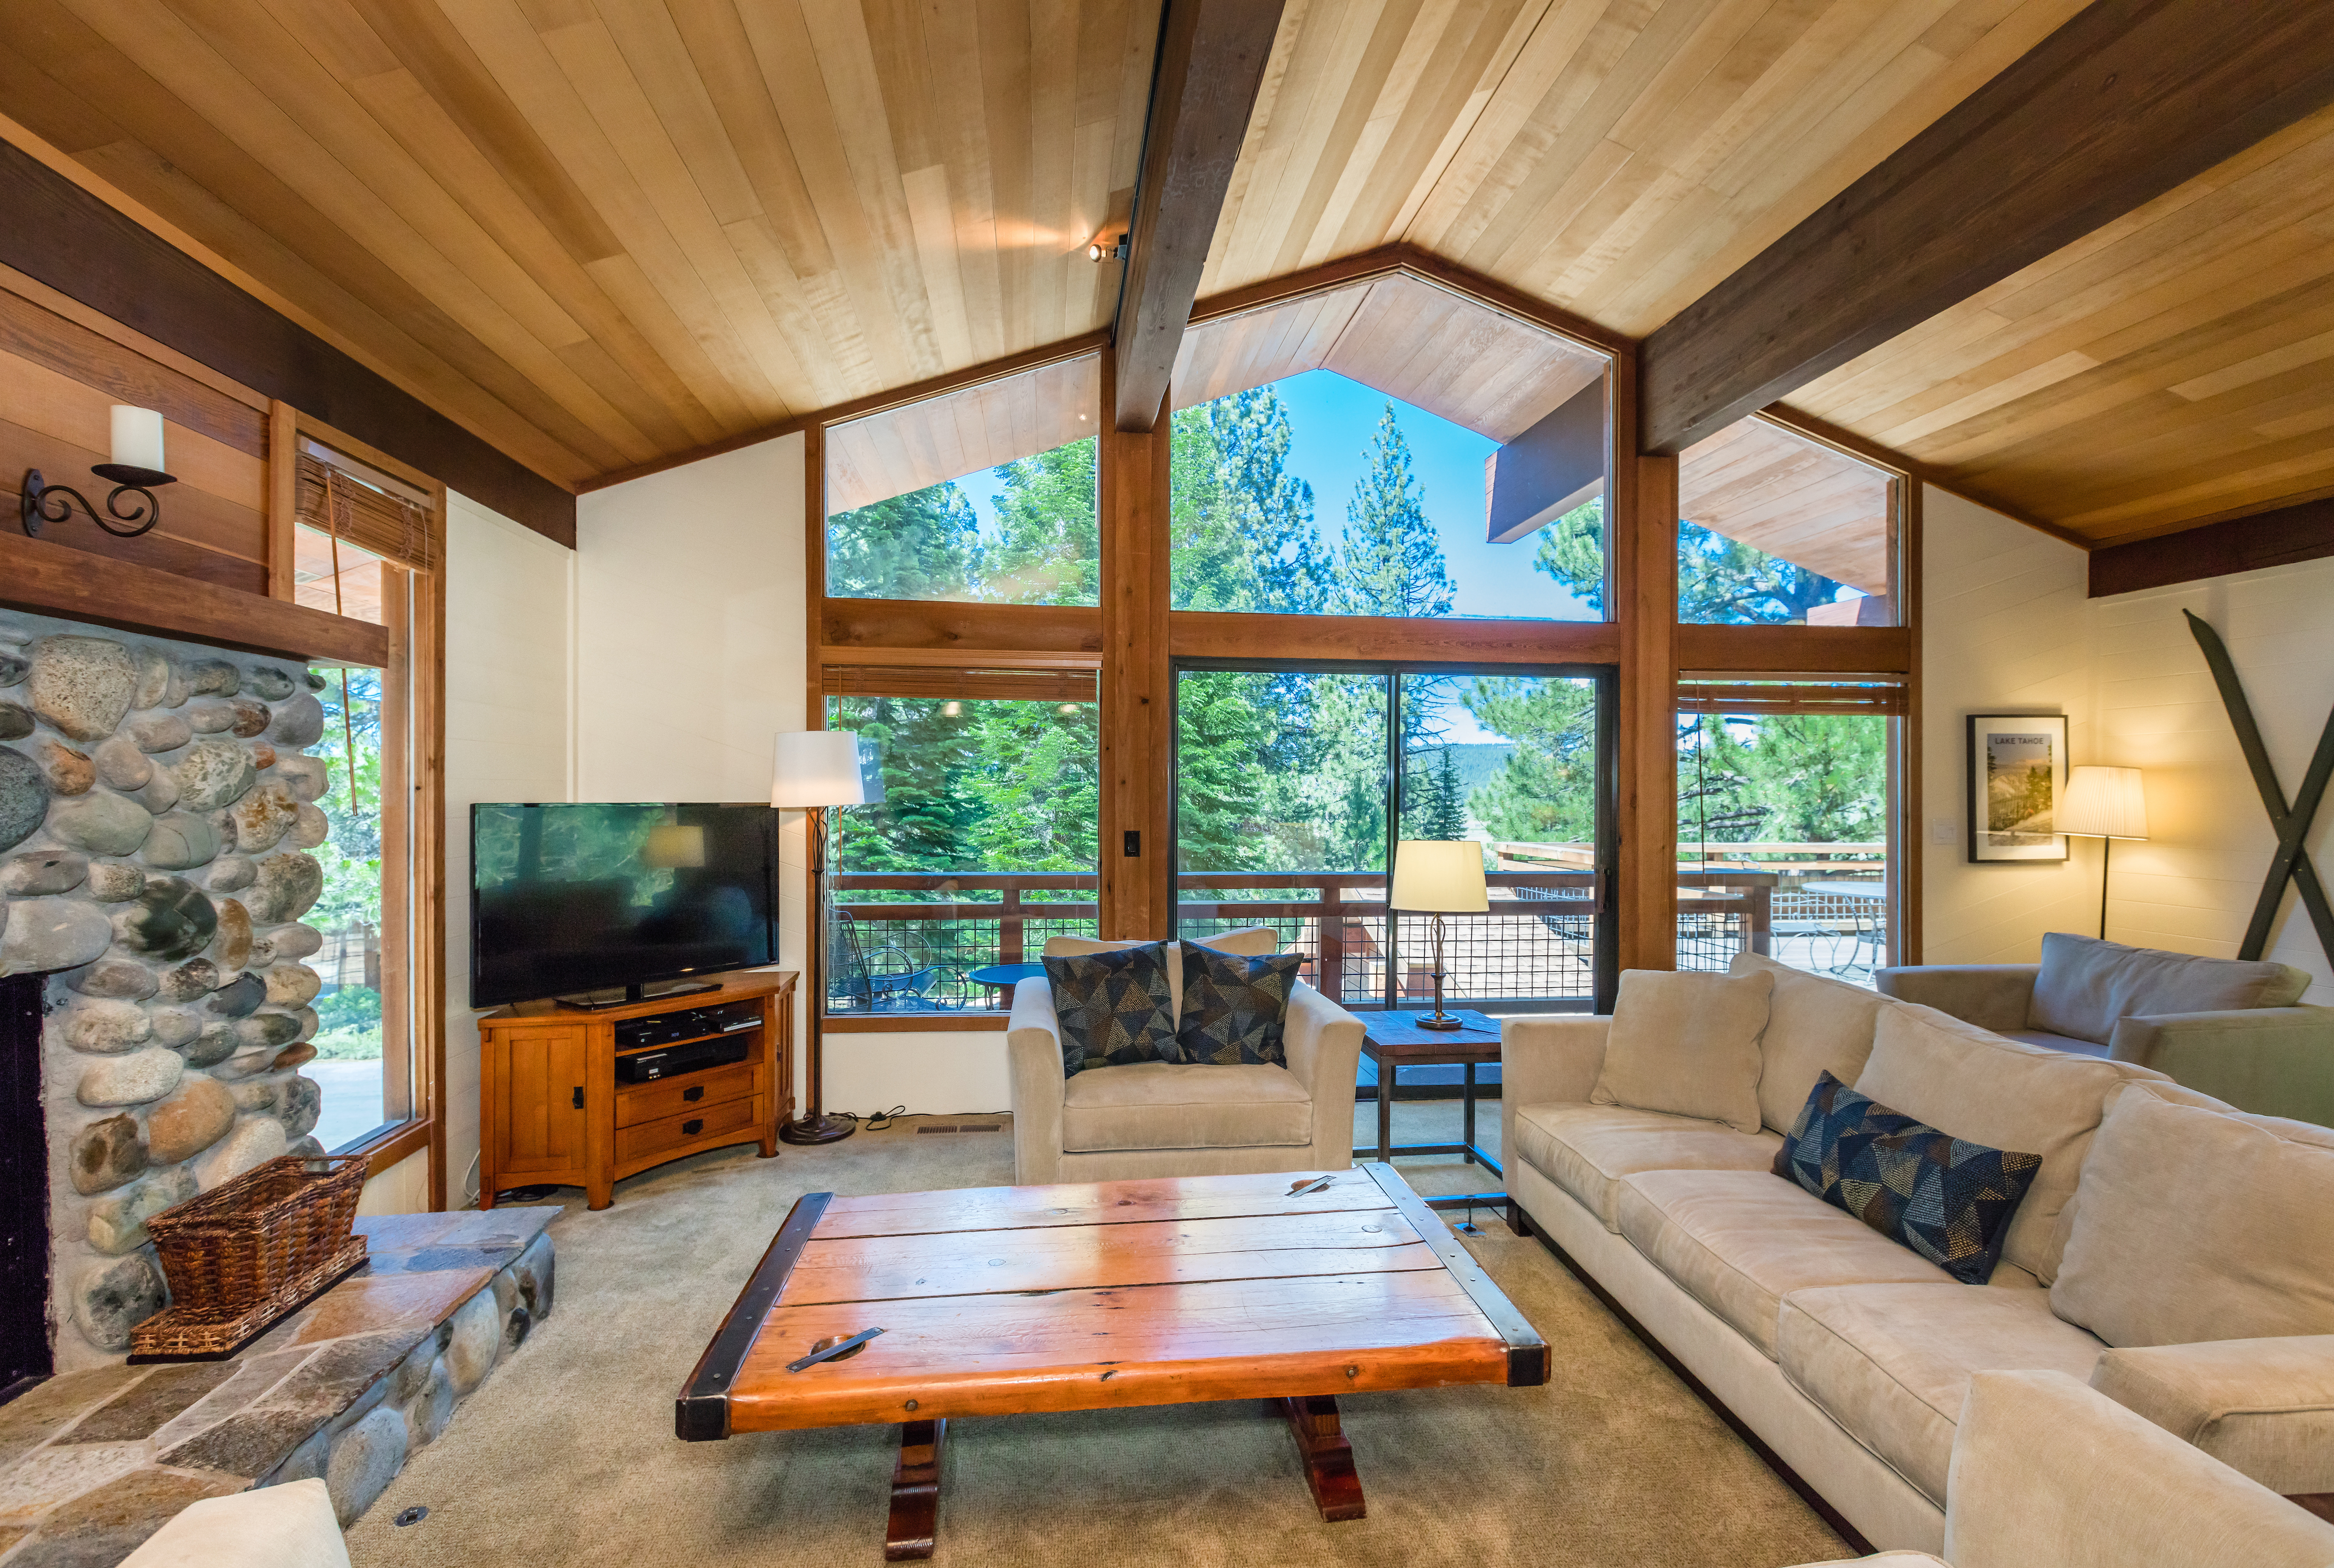 Pine tree views from the great room, sliders open to a front deck with outdoor seating